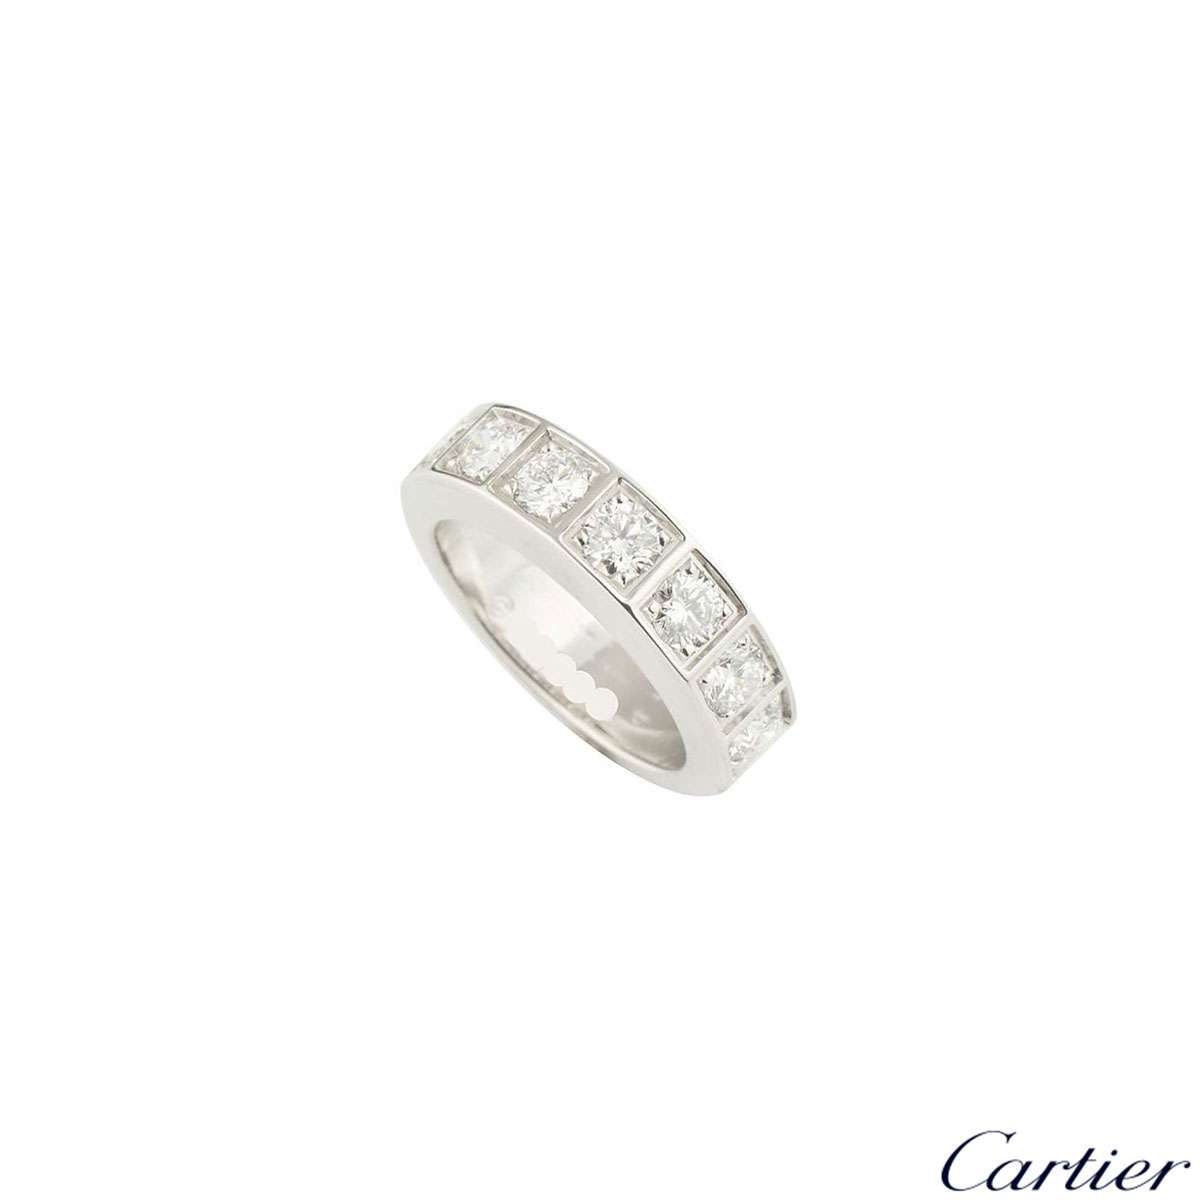 Cartier Diamond Half Eternity Ring 1.05ct